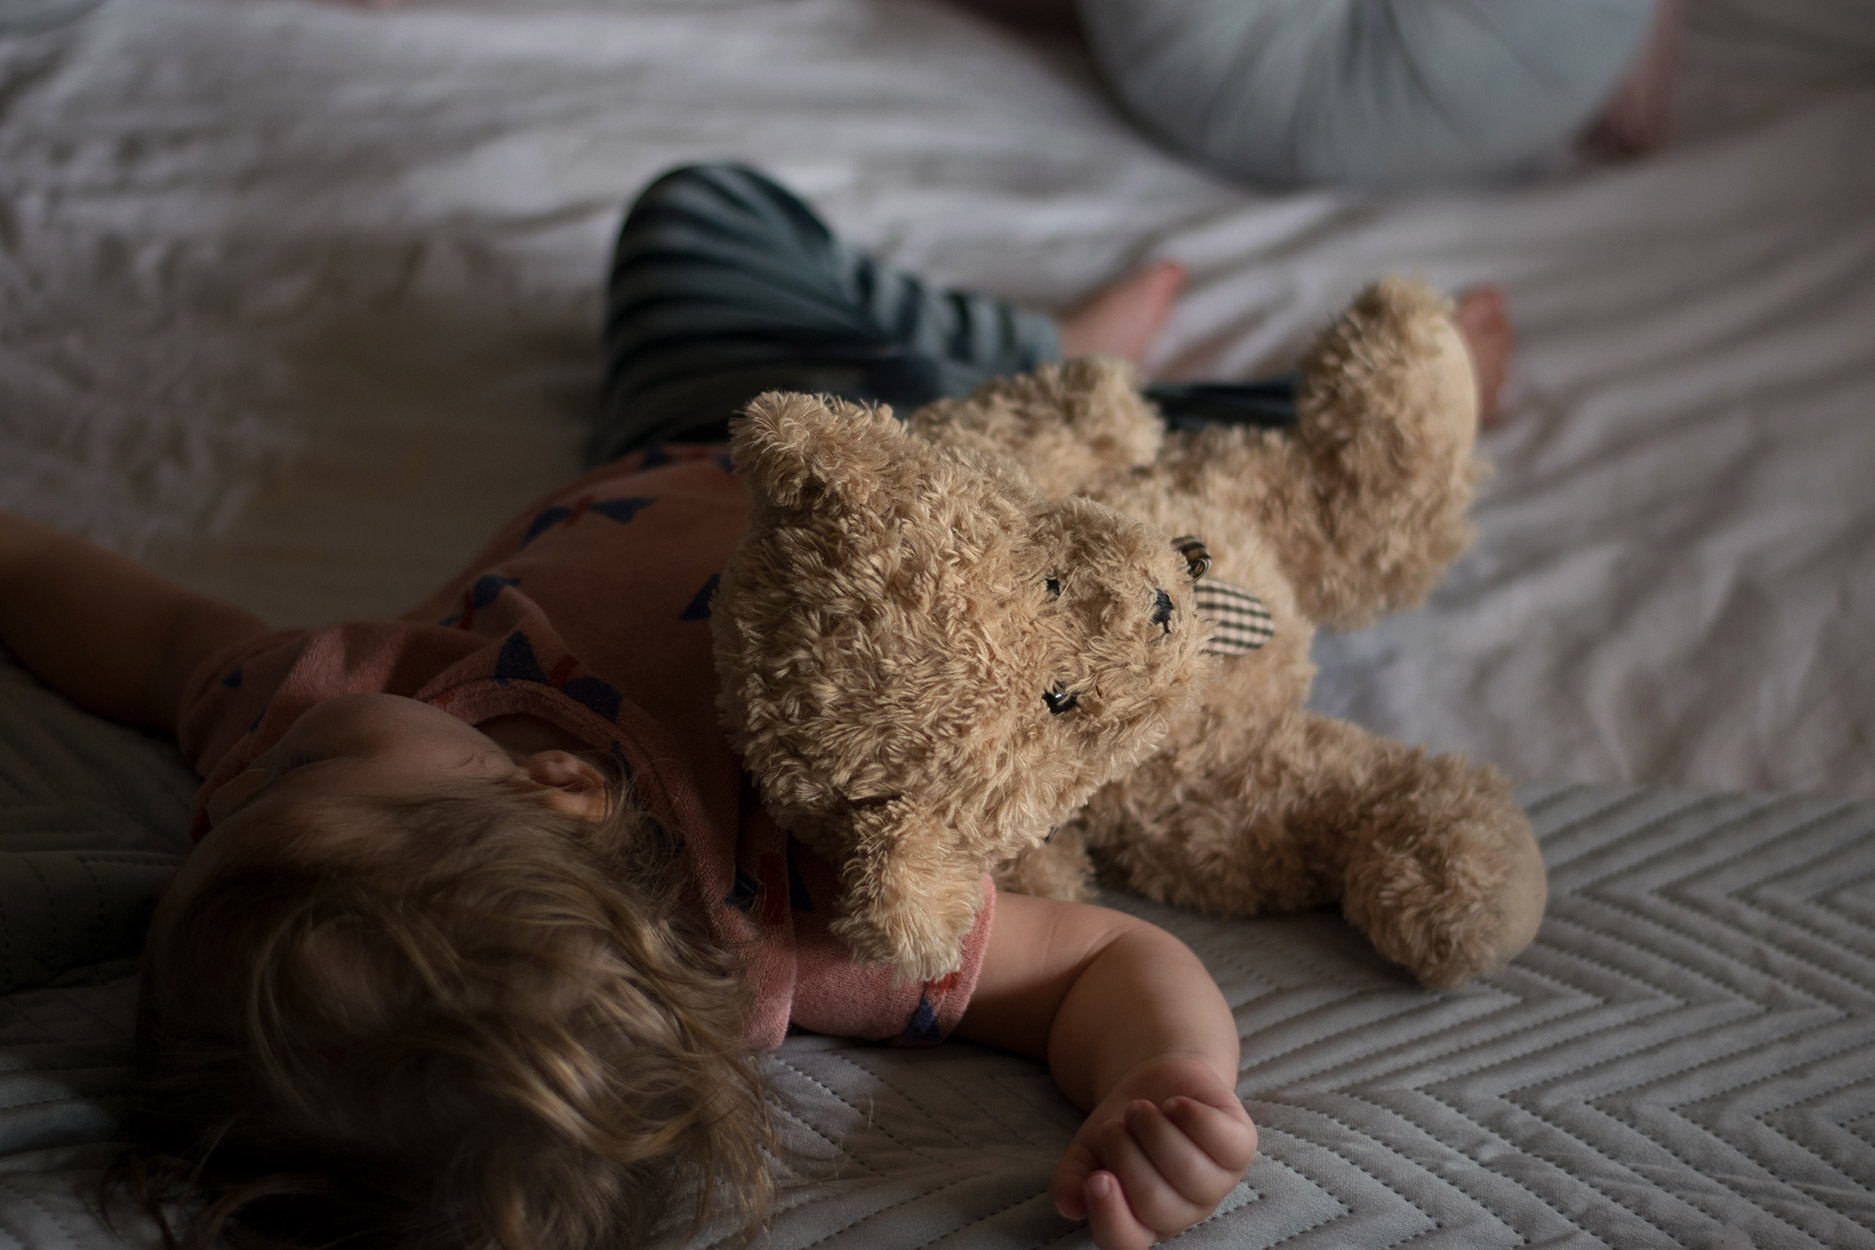 Toddler having a nap with teddy bear wearing Bobo Choses butterfly vest